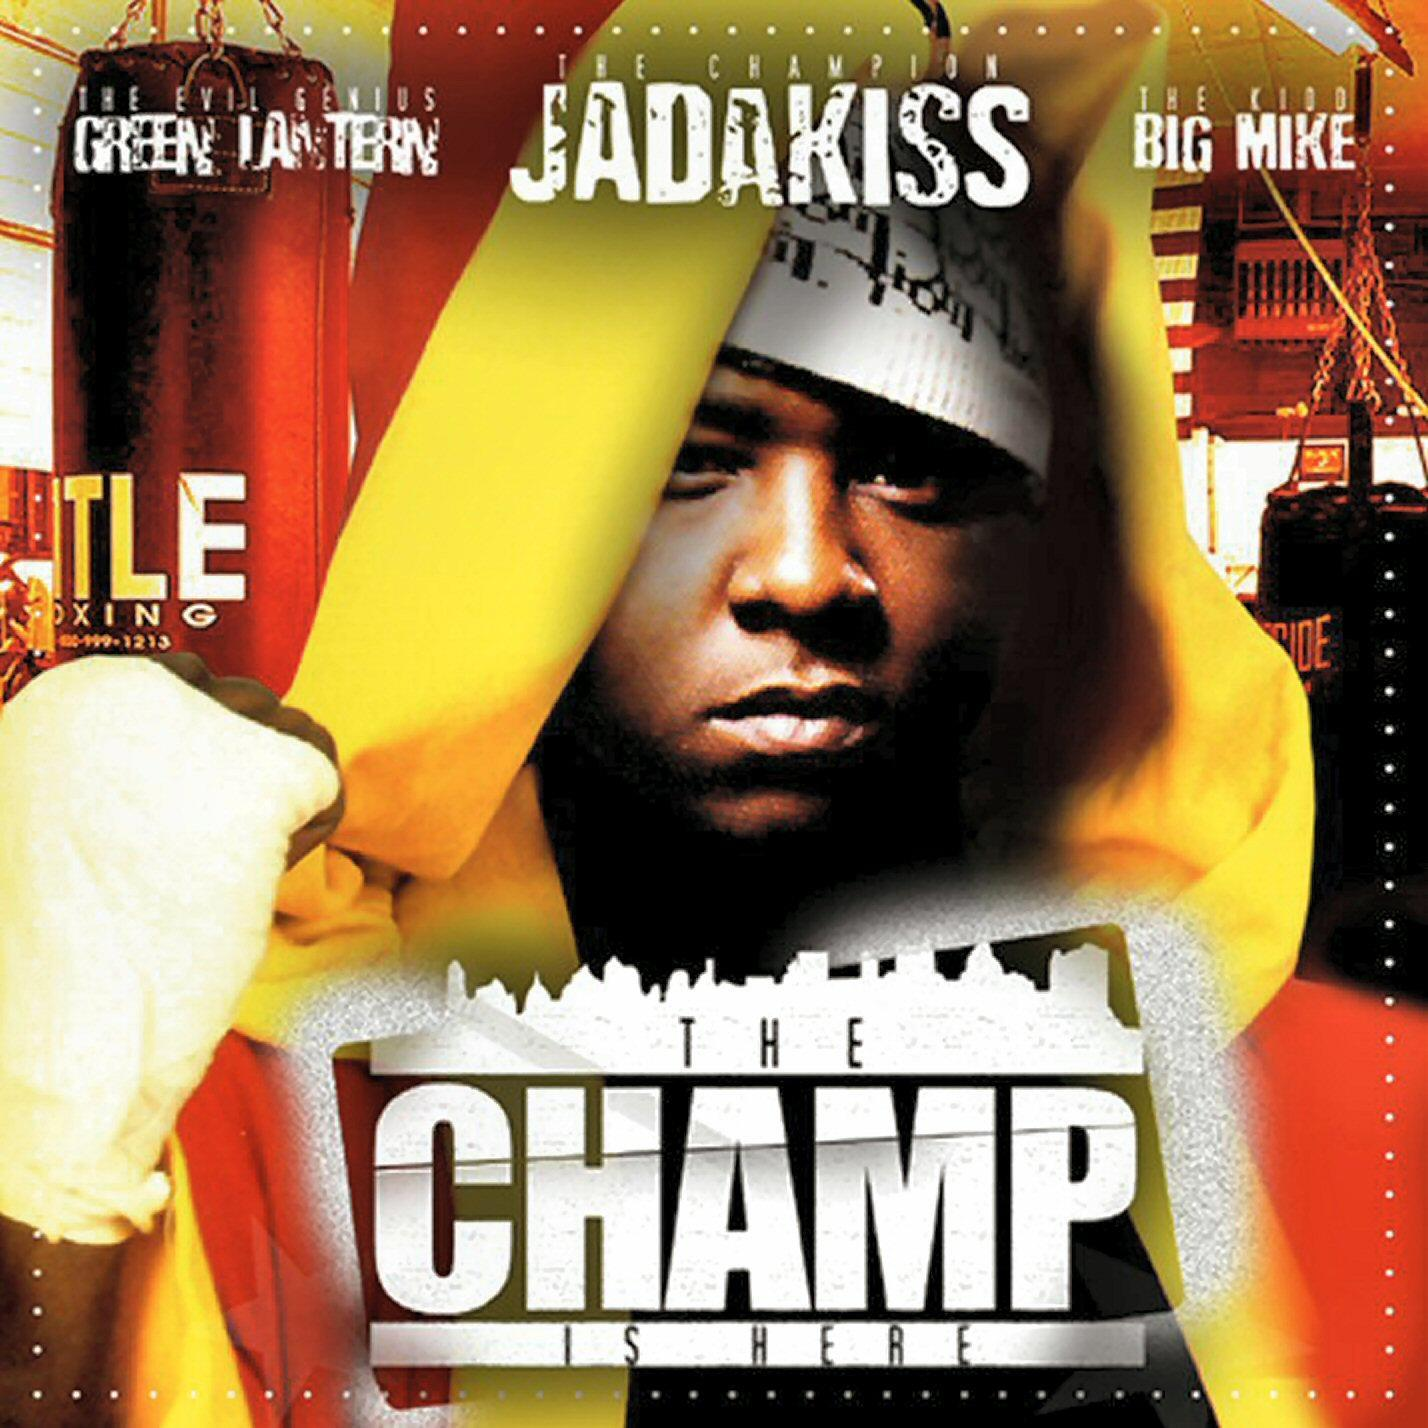 DJ Green Lantern, Big Mike & Jadakiss - The Champ Is Here